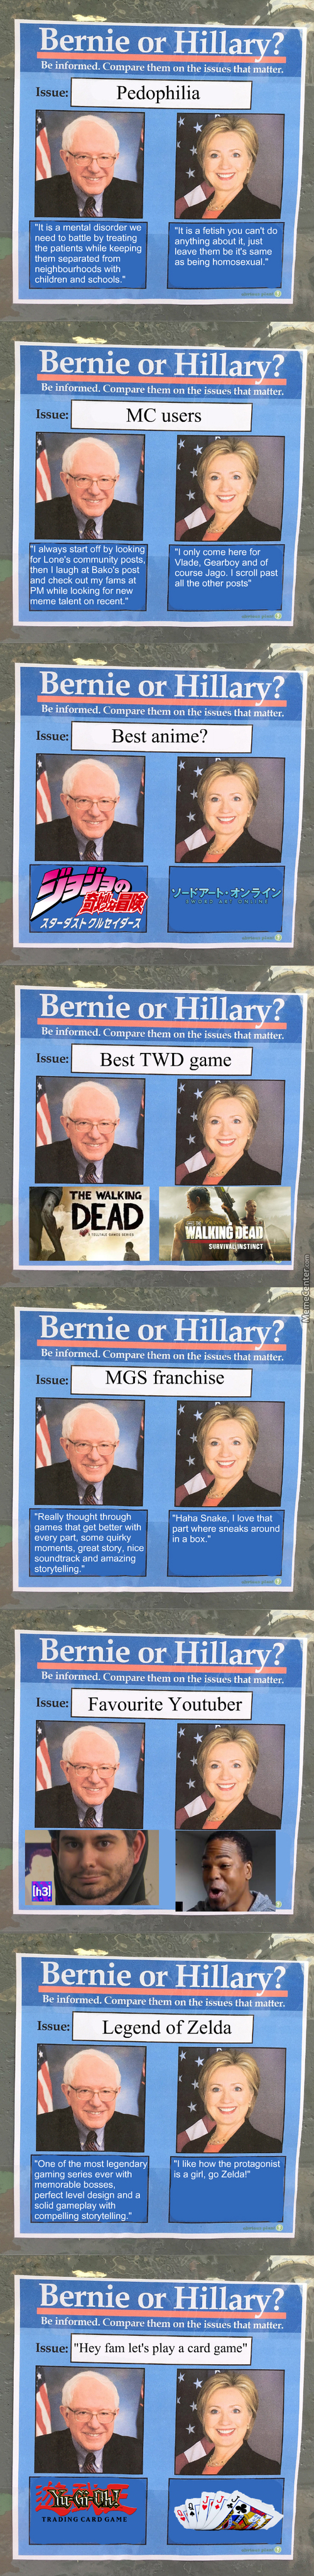 Bernie Knows The Heart Of The Cards. What's Your Secret Weapon Hillary?